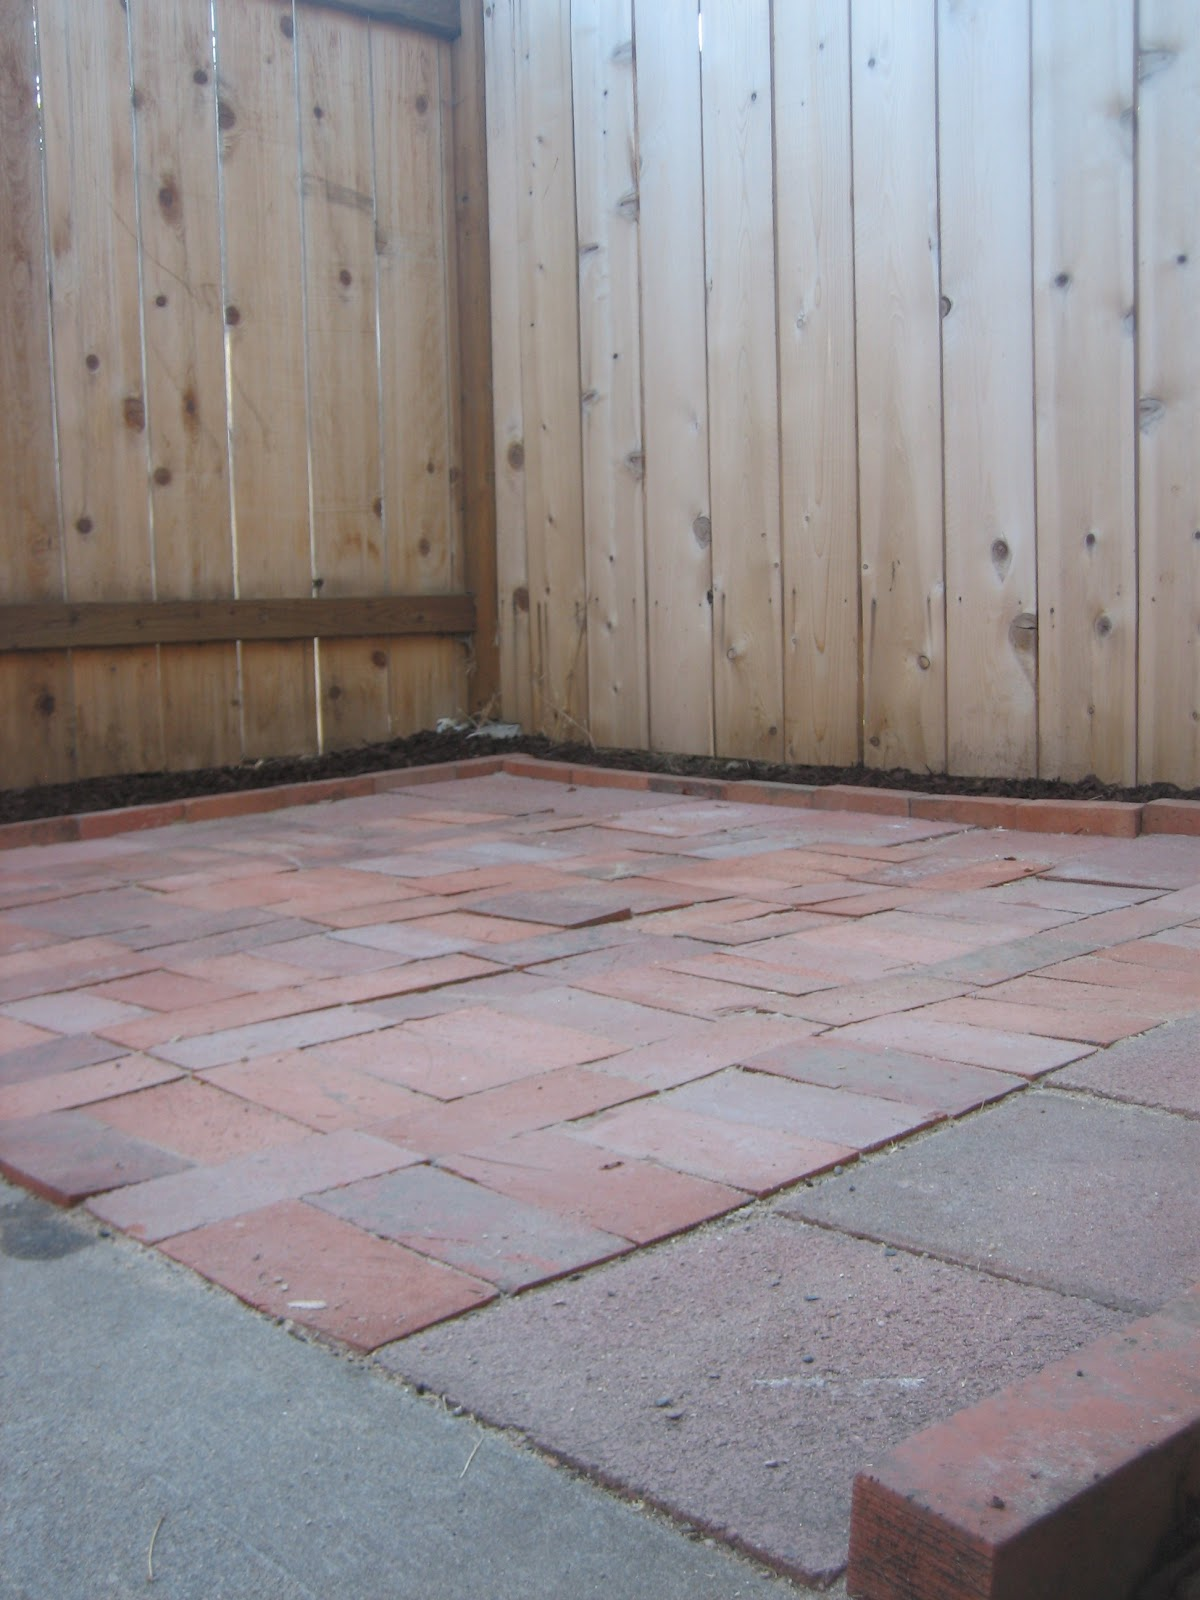 Brick Paver Patio With Fire Pit Cost: Bye Bye Rent. Hello Mortgage!: Laying A Brick Paver Patio